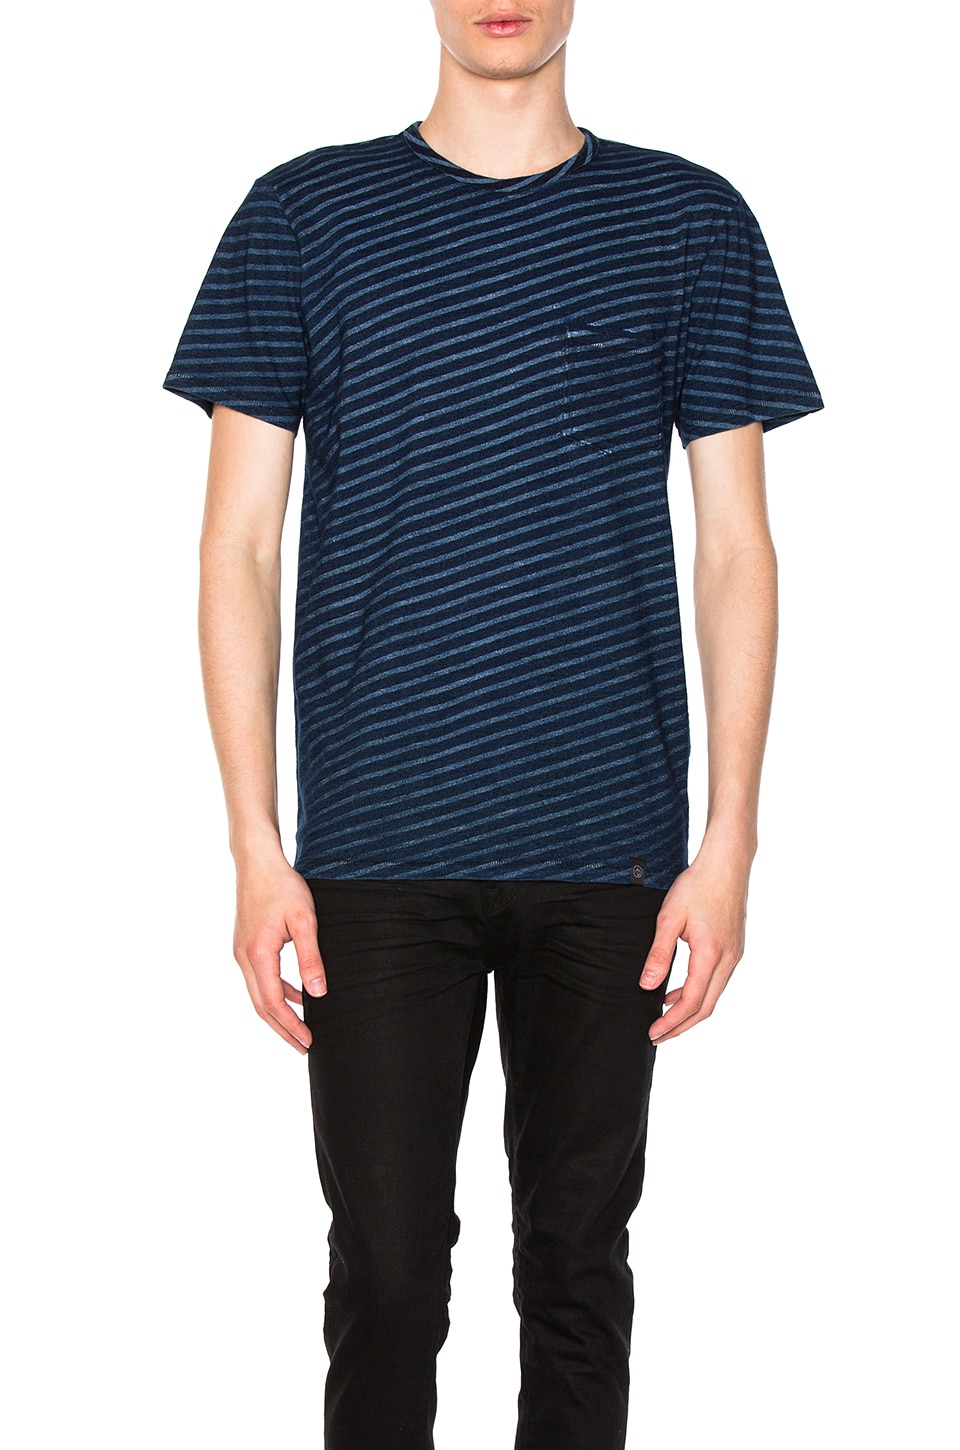 James Tee by Rag & Bone